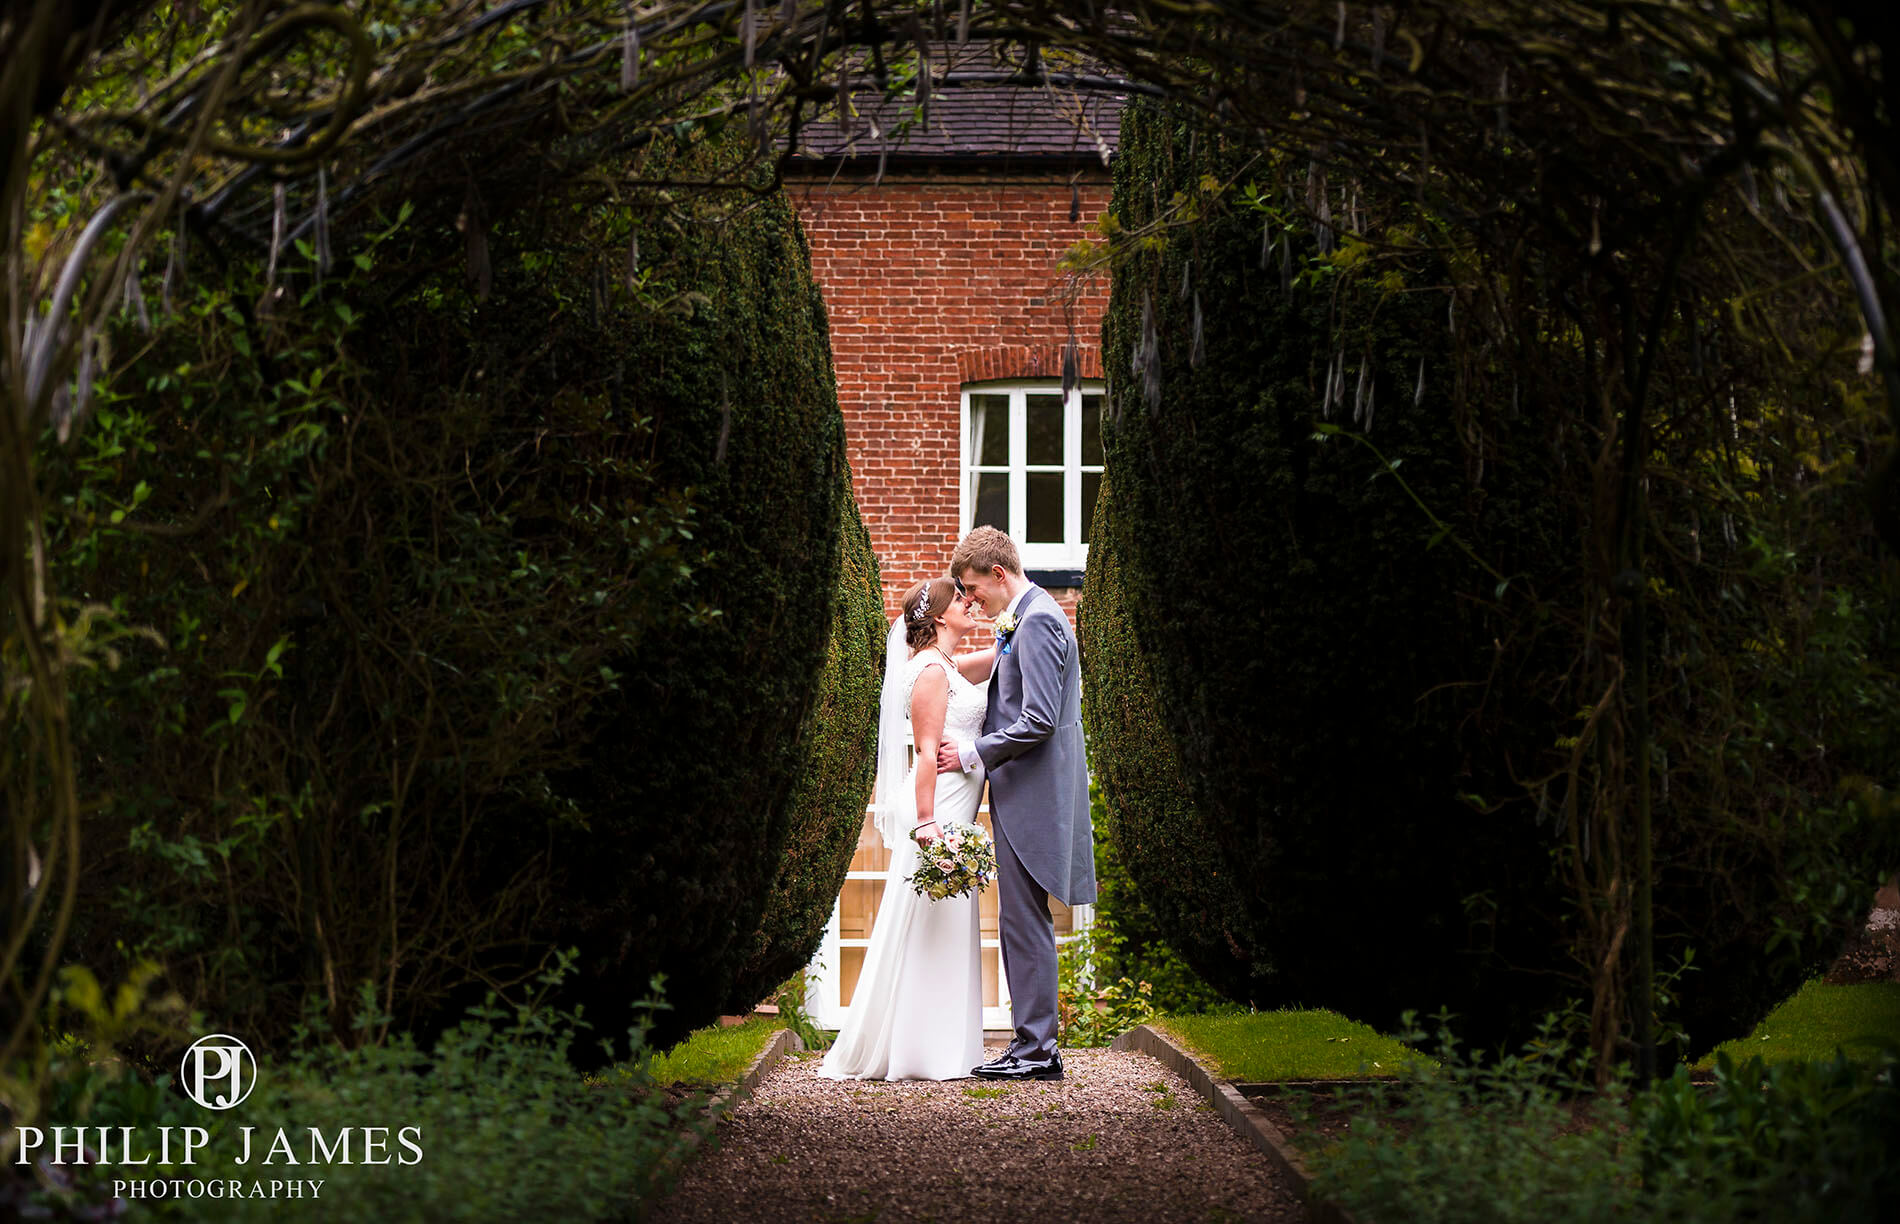 Birmingham Wedding Photographer - Philip James Photography based in Solihull (2 of 68)